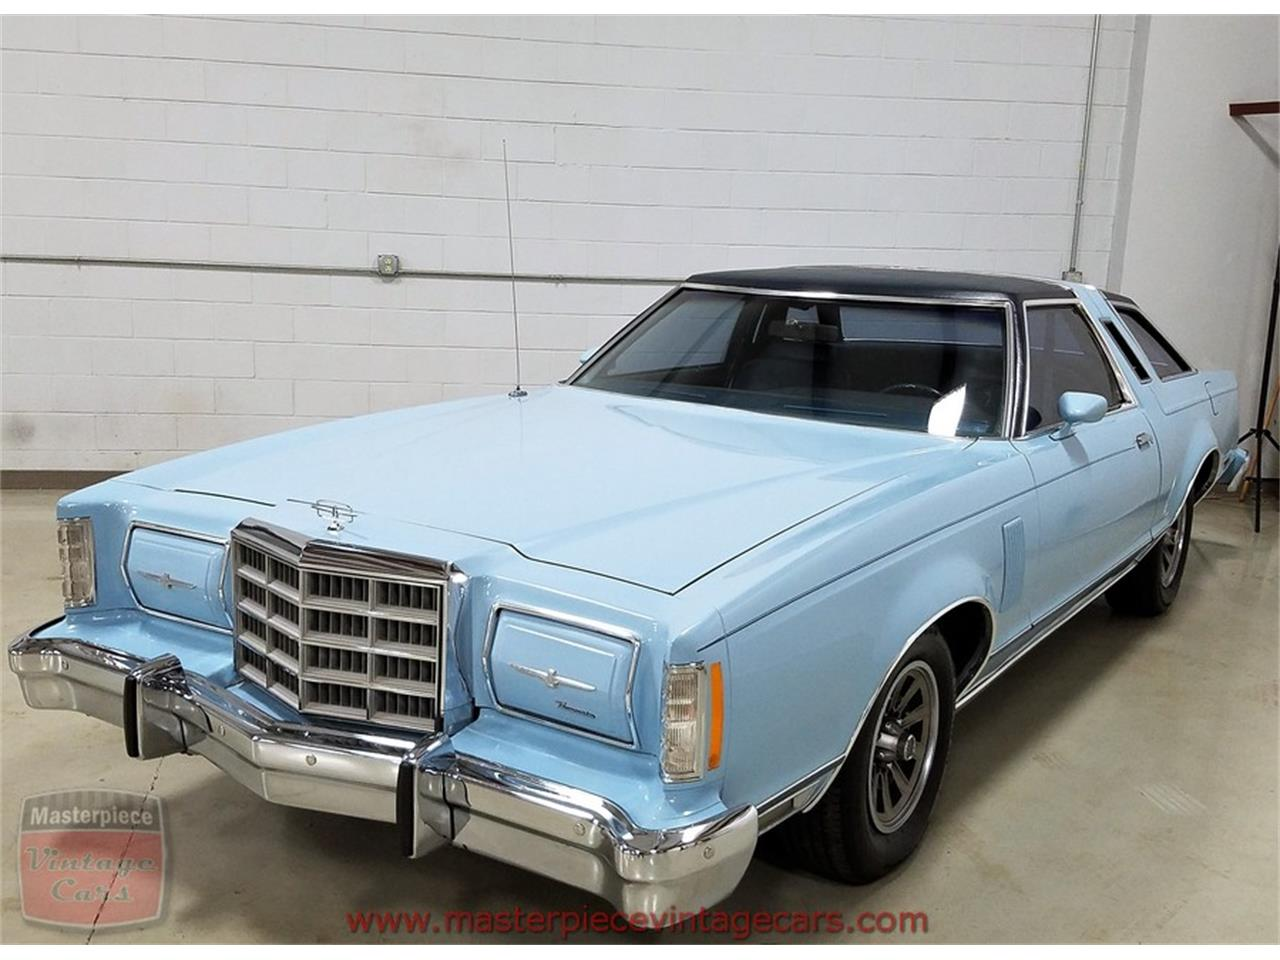 Large Picture of 1979 Ford Thunderbird located in Indiana - $6,950.00 Offered by Masterpiece Vintage Cars - KV4O